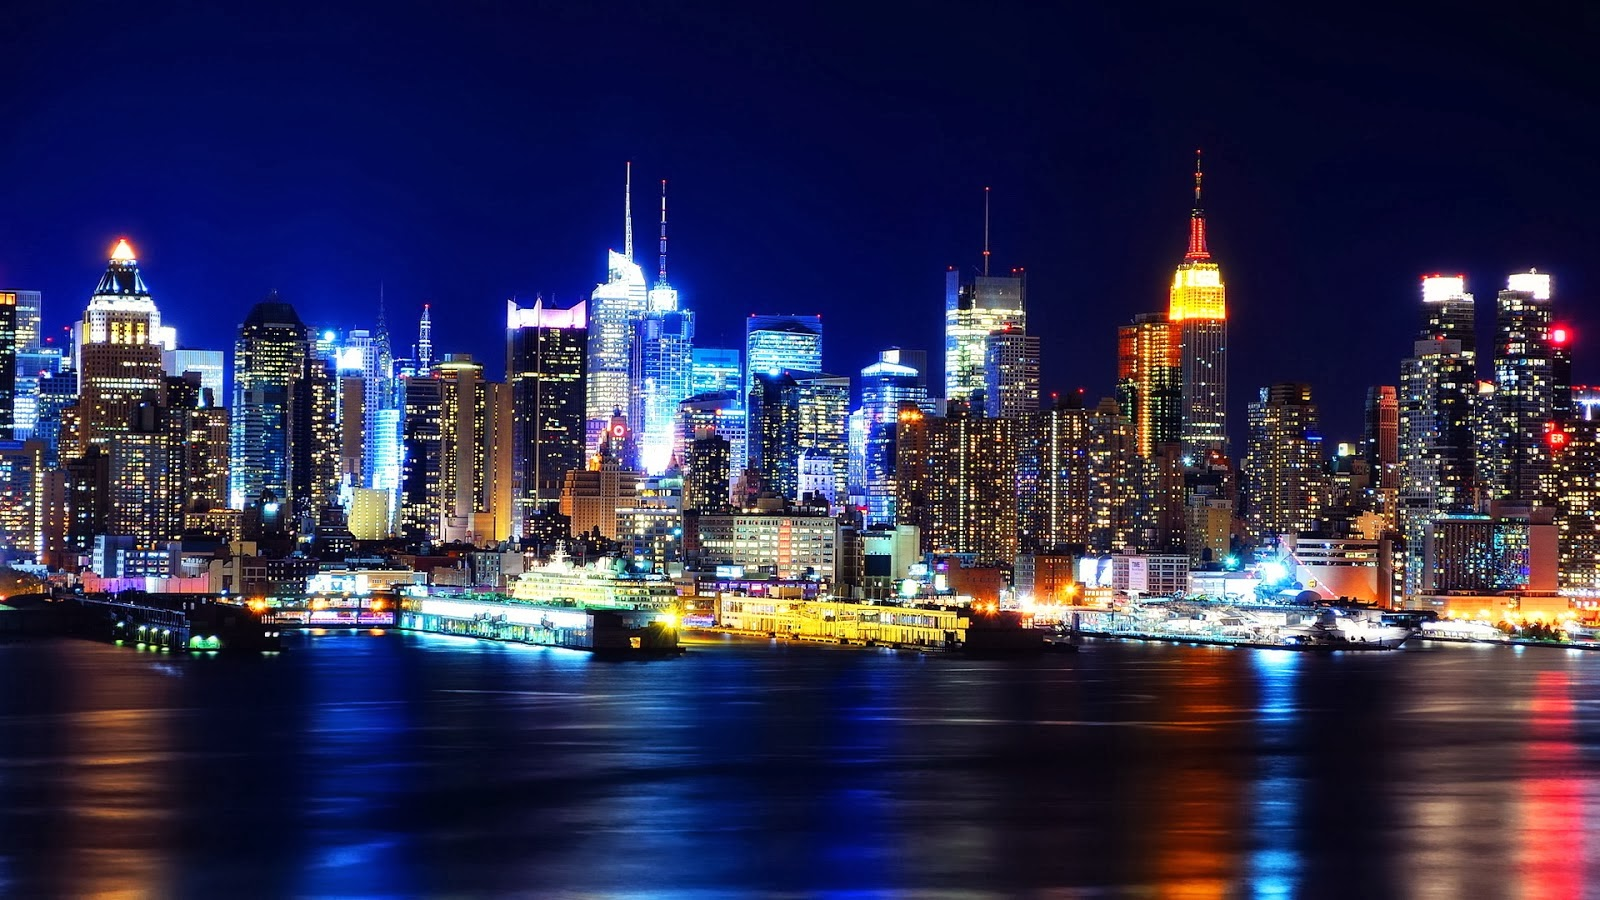 1080p New York Wallpaper in All Its glory